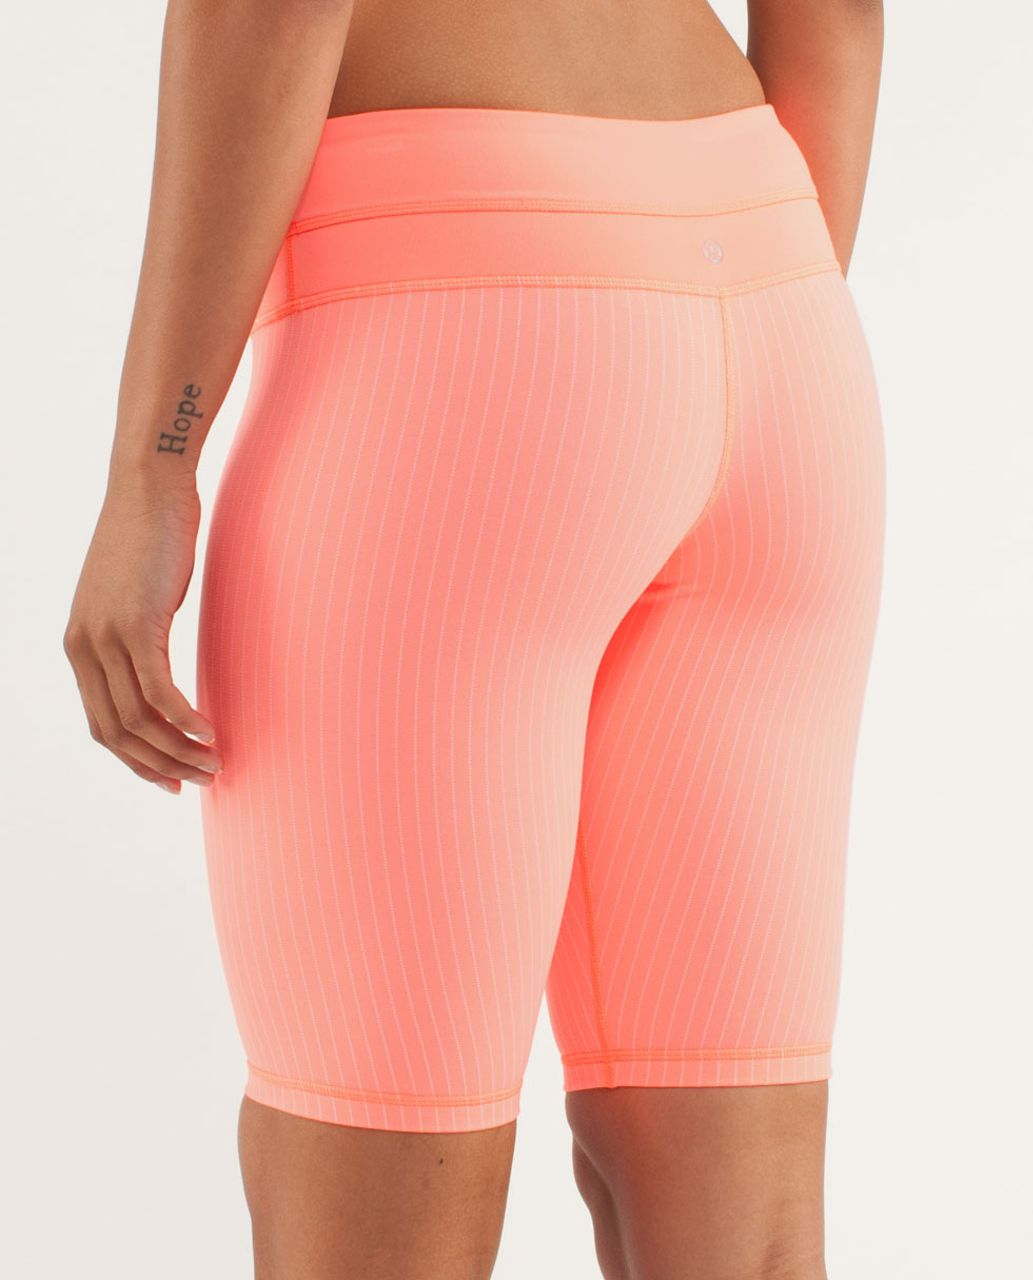 Lululemon Reverse Groove Short (Tall) - Pop Orange / Bleached Coral